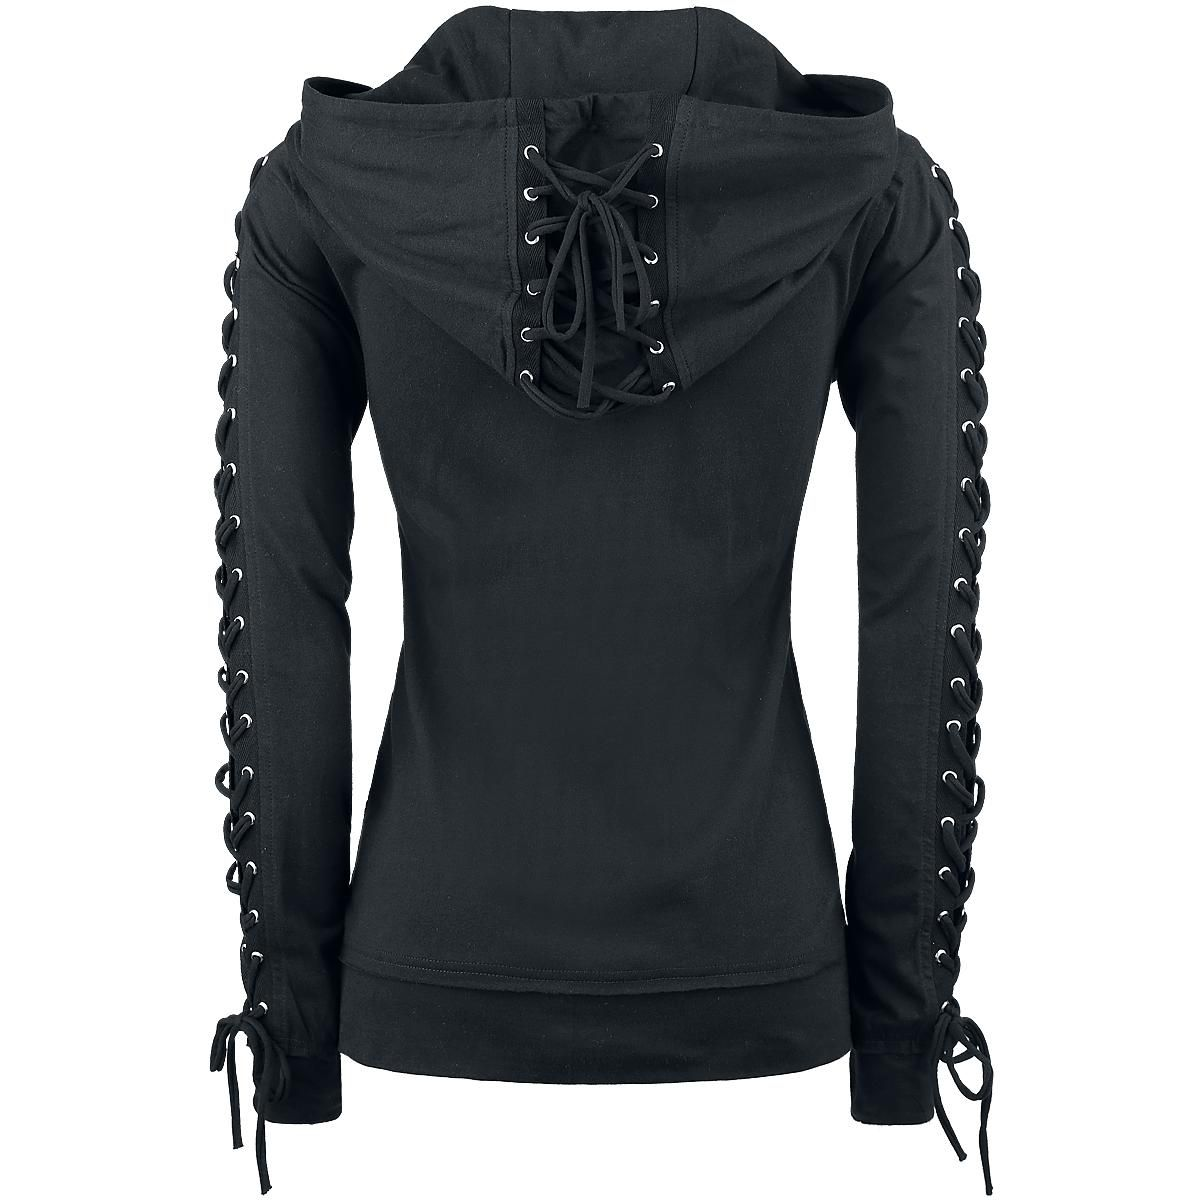 Corded Hood - Girls hooded zip by Gothicana by EMP - Article Number  274786  - from 39.99 € • EMP 96233084dec